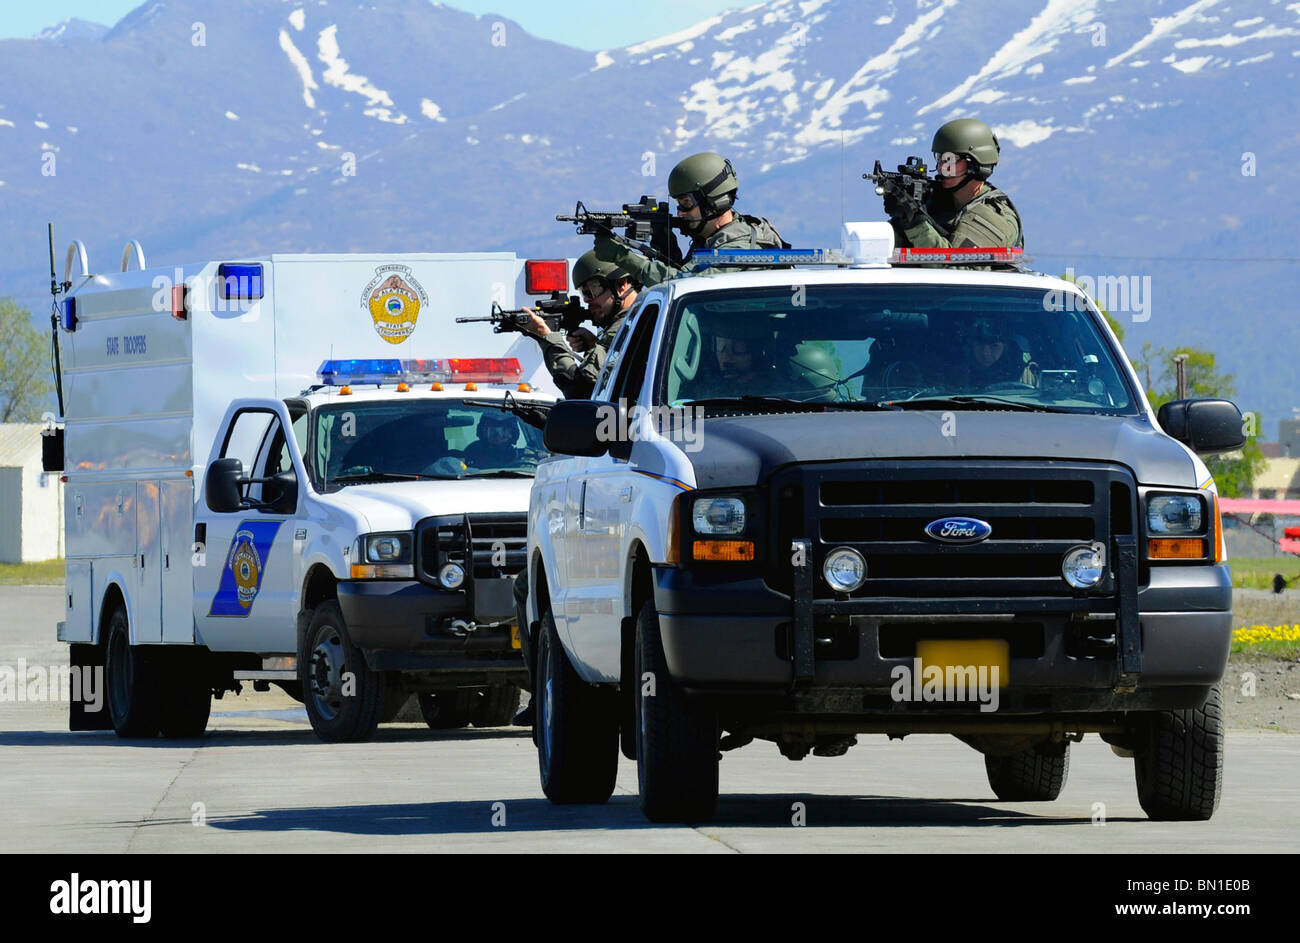 An FBI and Alaska State Trooper joint SWAT team move toward an aircraft during Arctic Fencing Interagency Arrow Stock Photo